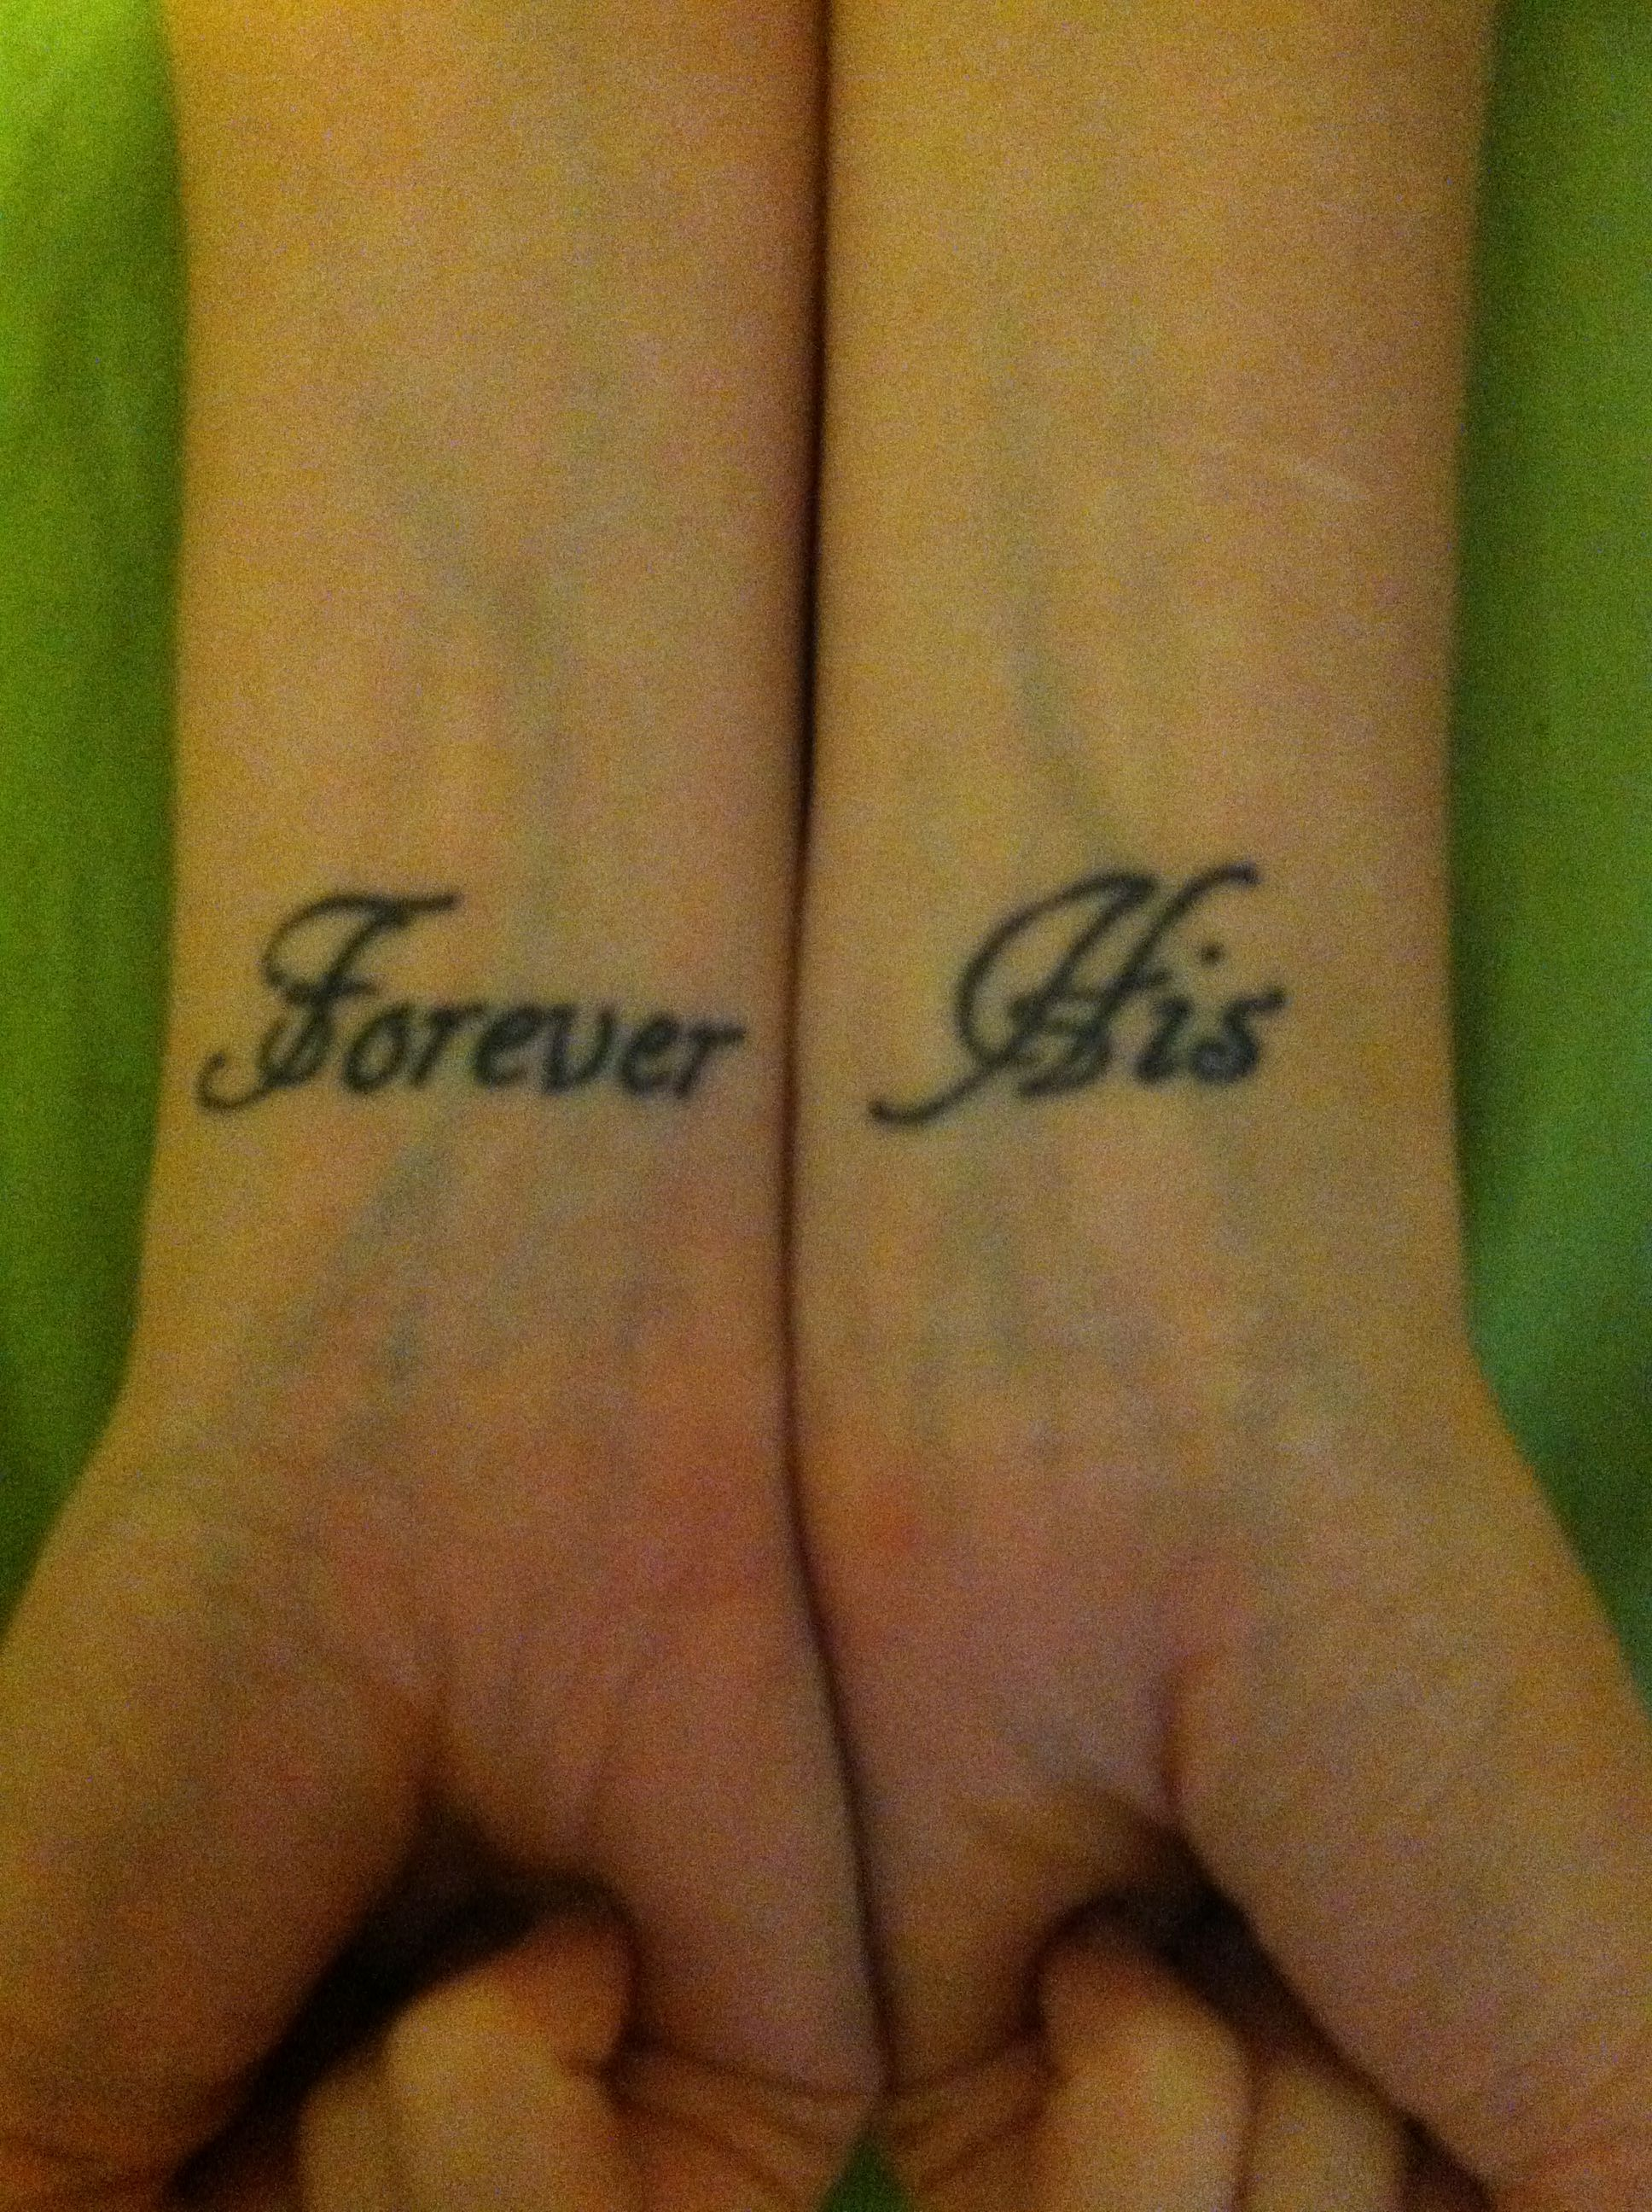 Matching his and hers tattoos | Tattoos | Pinterest